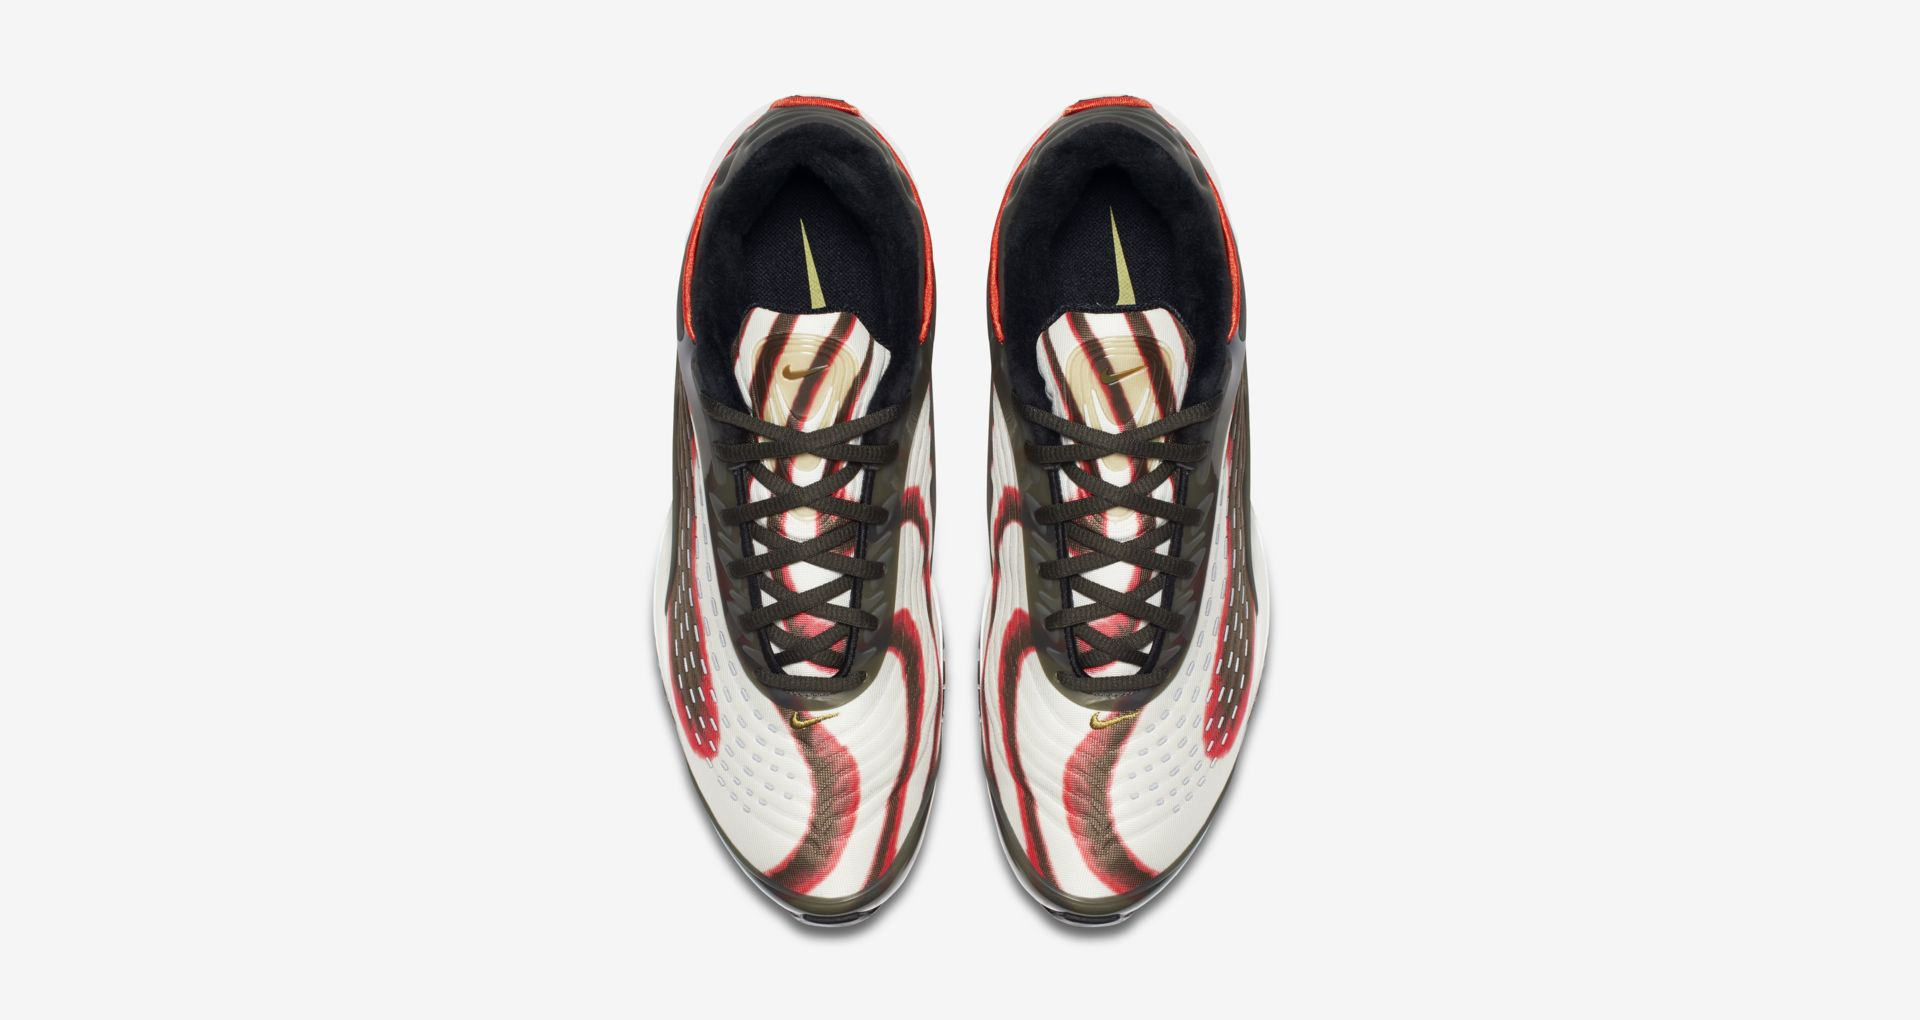 AJ7831 300 Nike Air Max Deluxe Sequoia 3